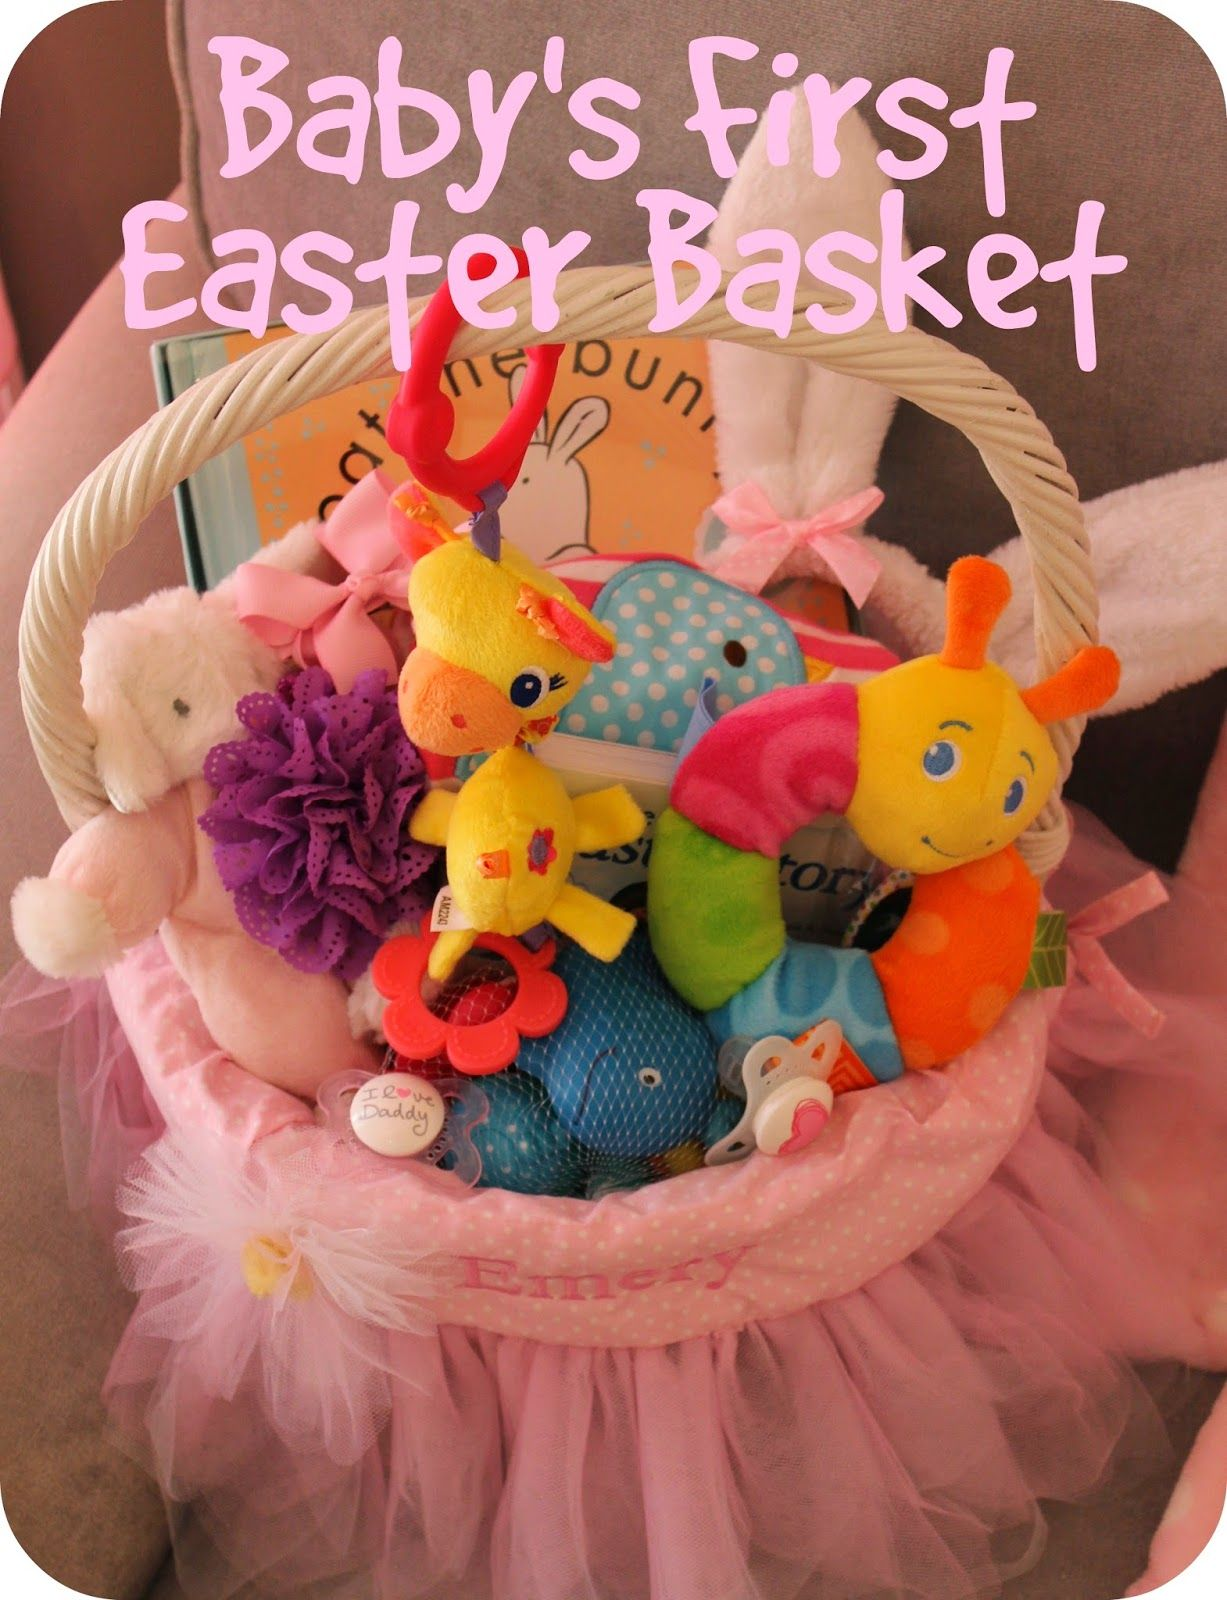 Babys first easter basket ideas for a newborn baby babys first easter basket ideas for a newborn negle Image collections